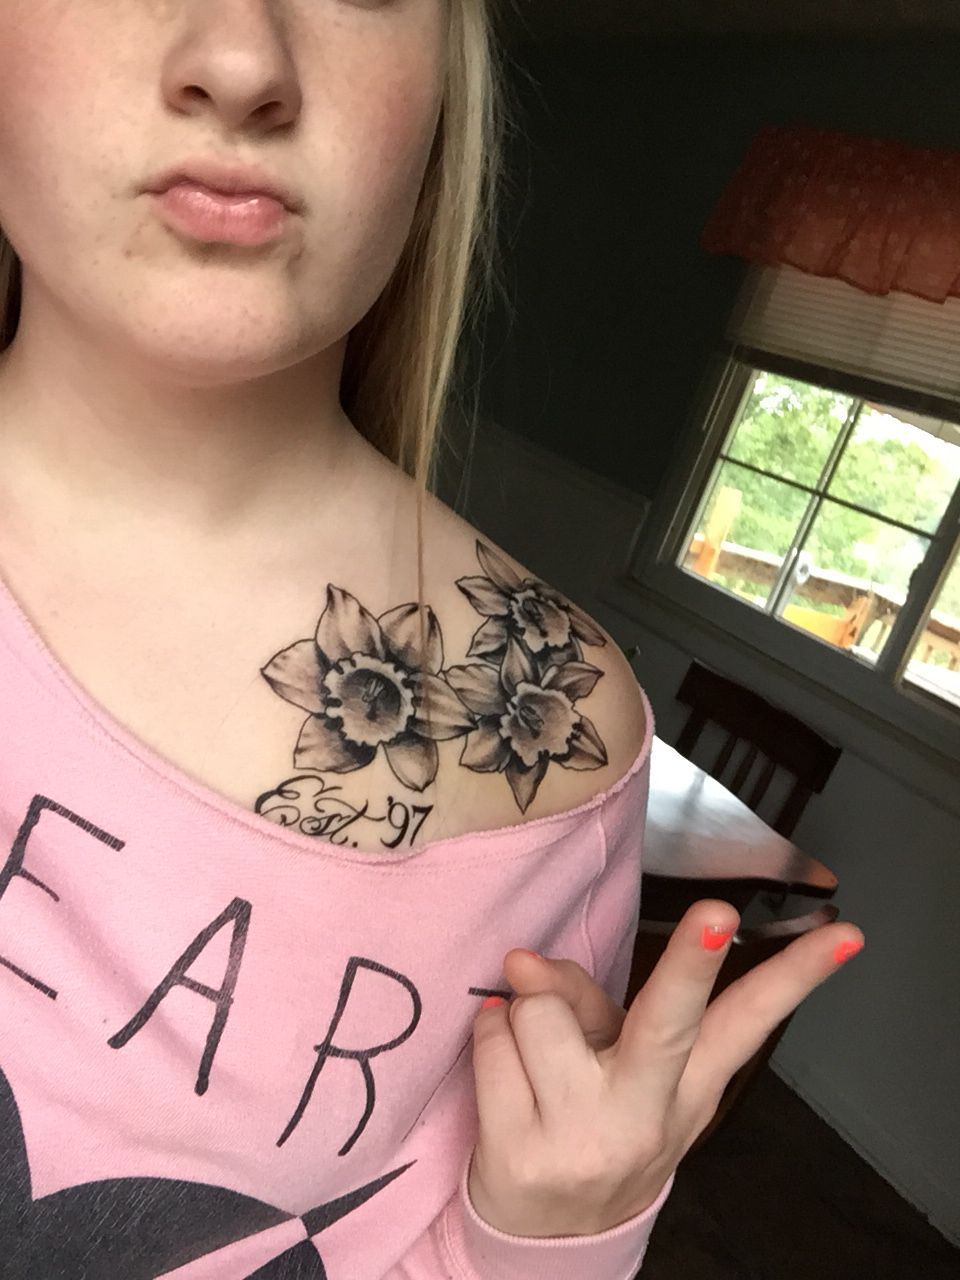 Shoulder Tattoos Daffodils This Girl Is Making A Stupid Face Shoulder Tattoo Tattoos Daffodil Tattoo